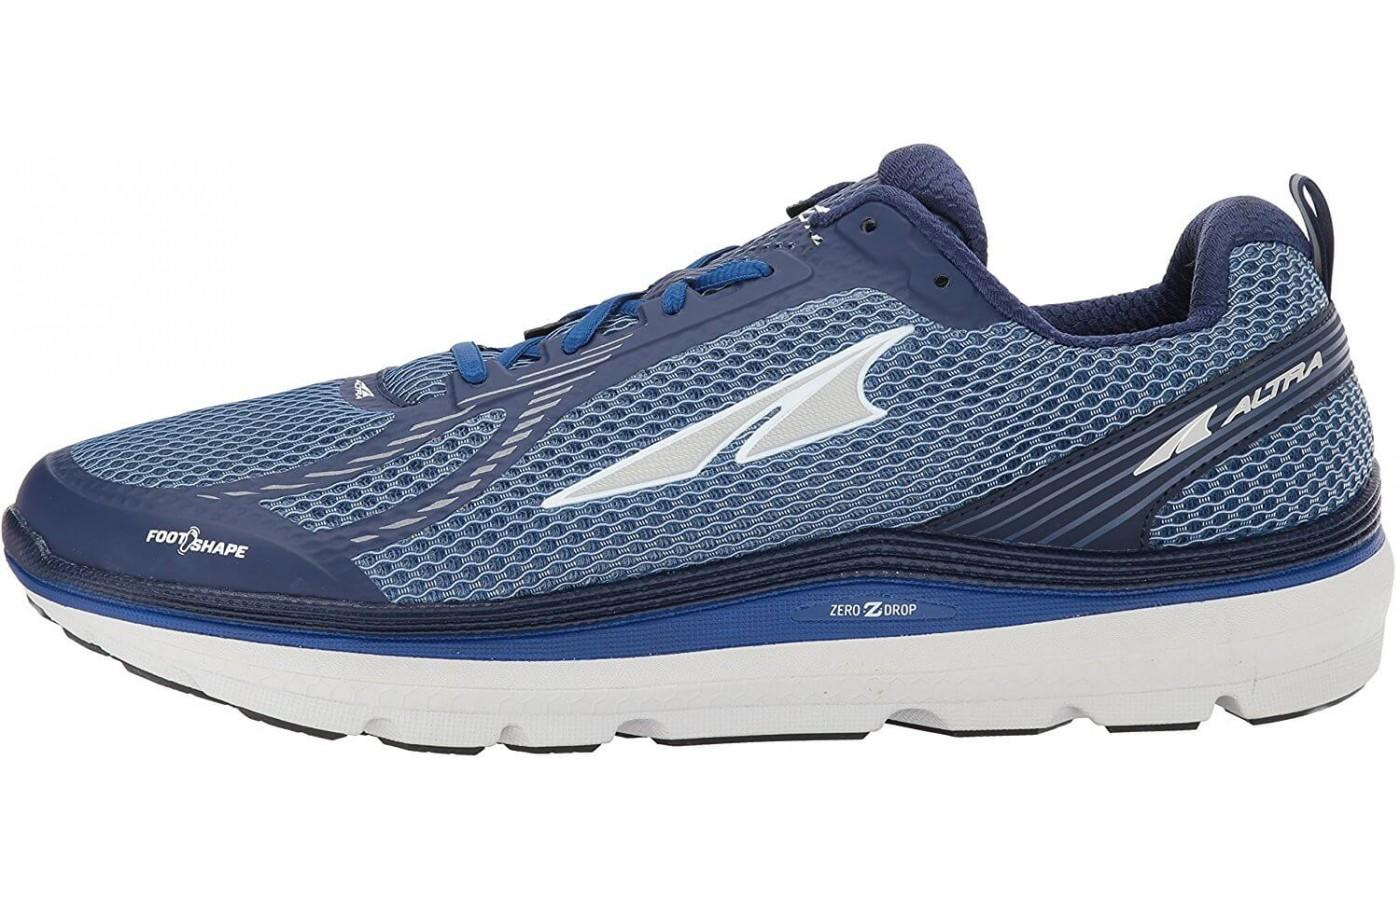 The Altra Paradigm 3.0 has ZeroDrop for strength and better balance